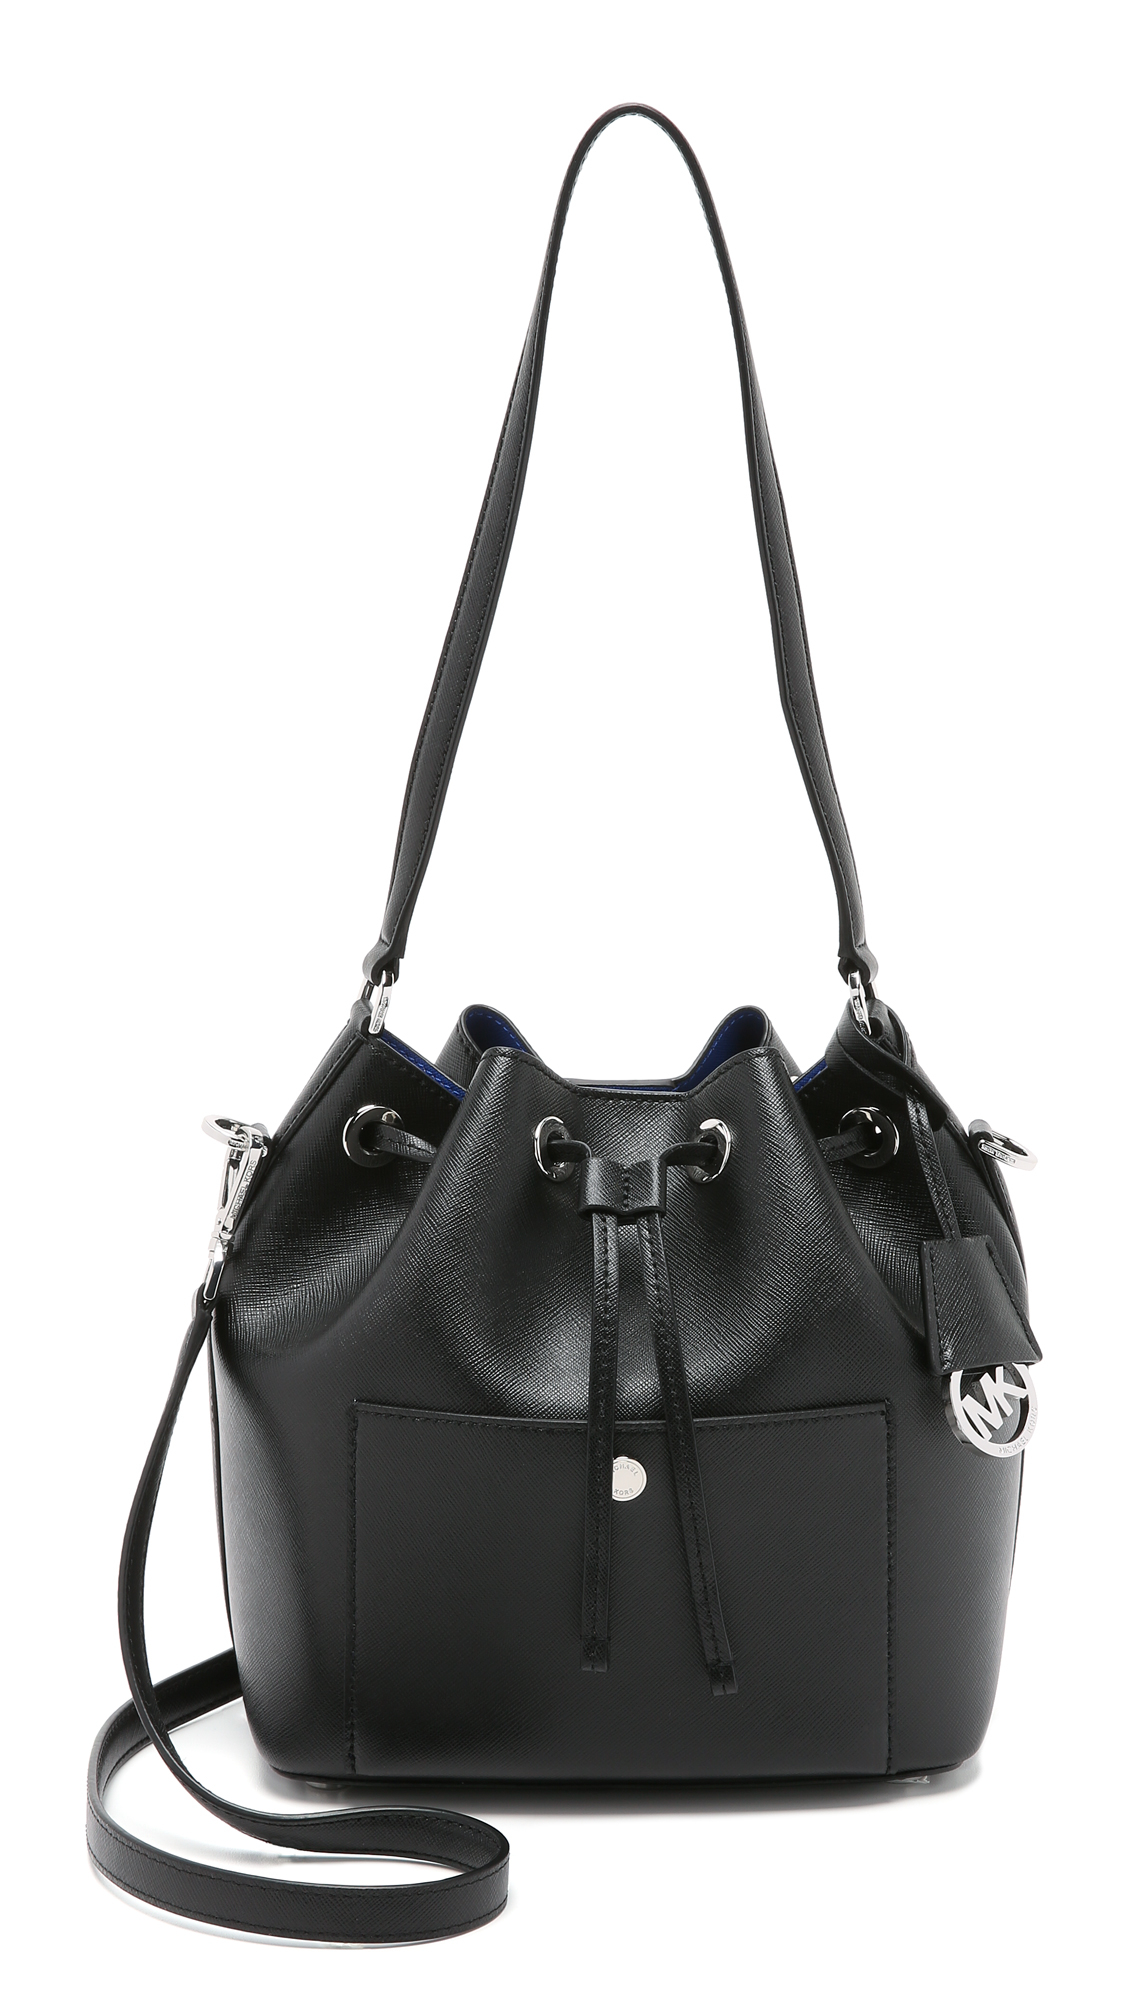 Lyst - MICHAEL Michael Kors Greenwich Medium Bucket Bag in Black b56982062467b